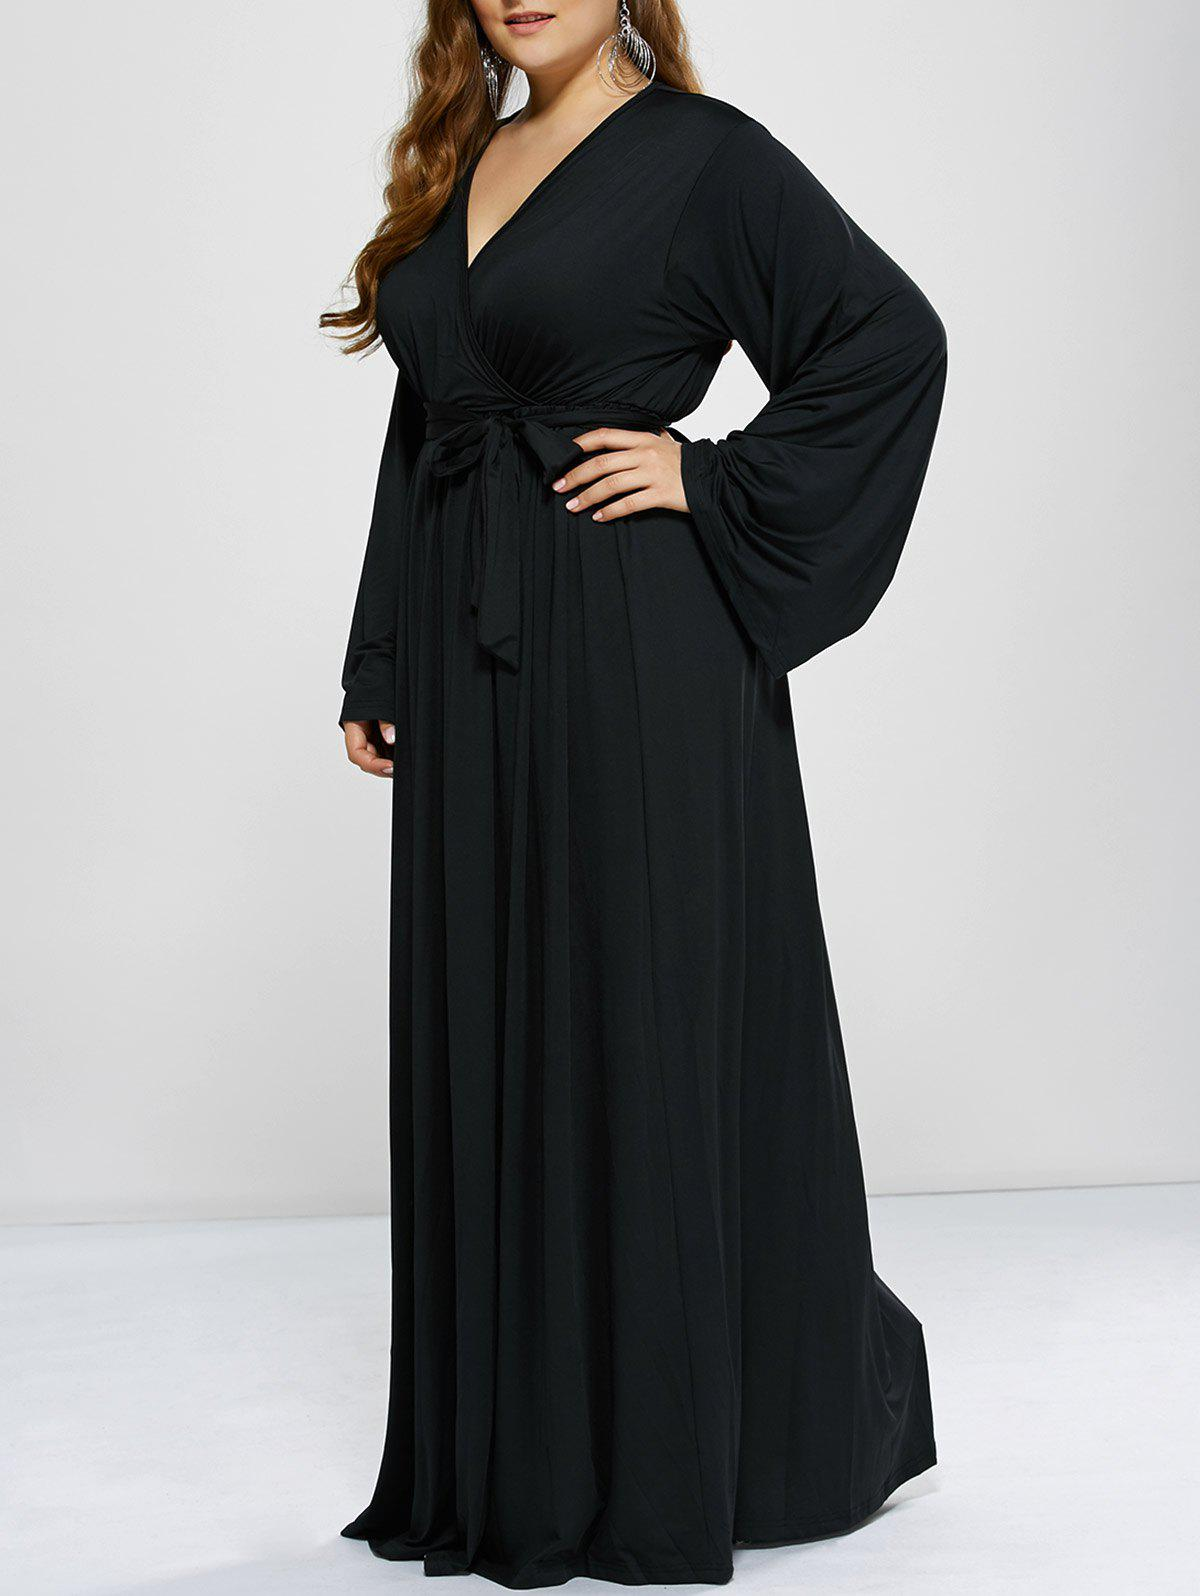 Floor Length Empire Waist A Line Formal Maxi Prom Evening DressWOMEN<br><br>Size: 3XL; Color: BLACK; Style: Casual; Material: Polyester; Silhouette: A-Line; Dresses Length: Floor-Length; Neckline: Plunging Neck; Sleeve Length: Long Sleeves; Pattern Type: Solid; With Belt: No; Season: Fall,Spring; Weight: 0.503kg; Package Contents: 1 x Dress;